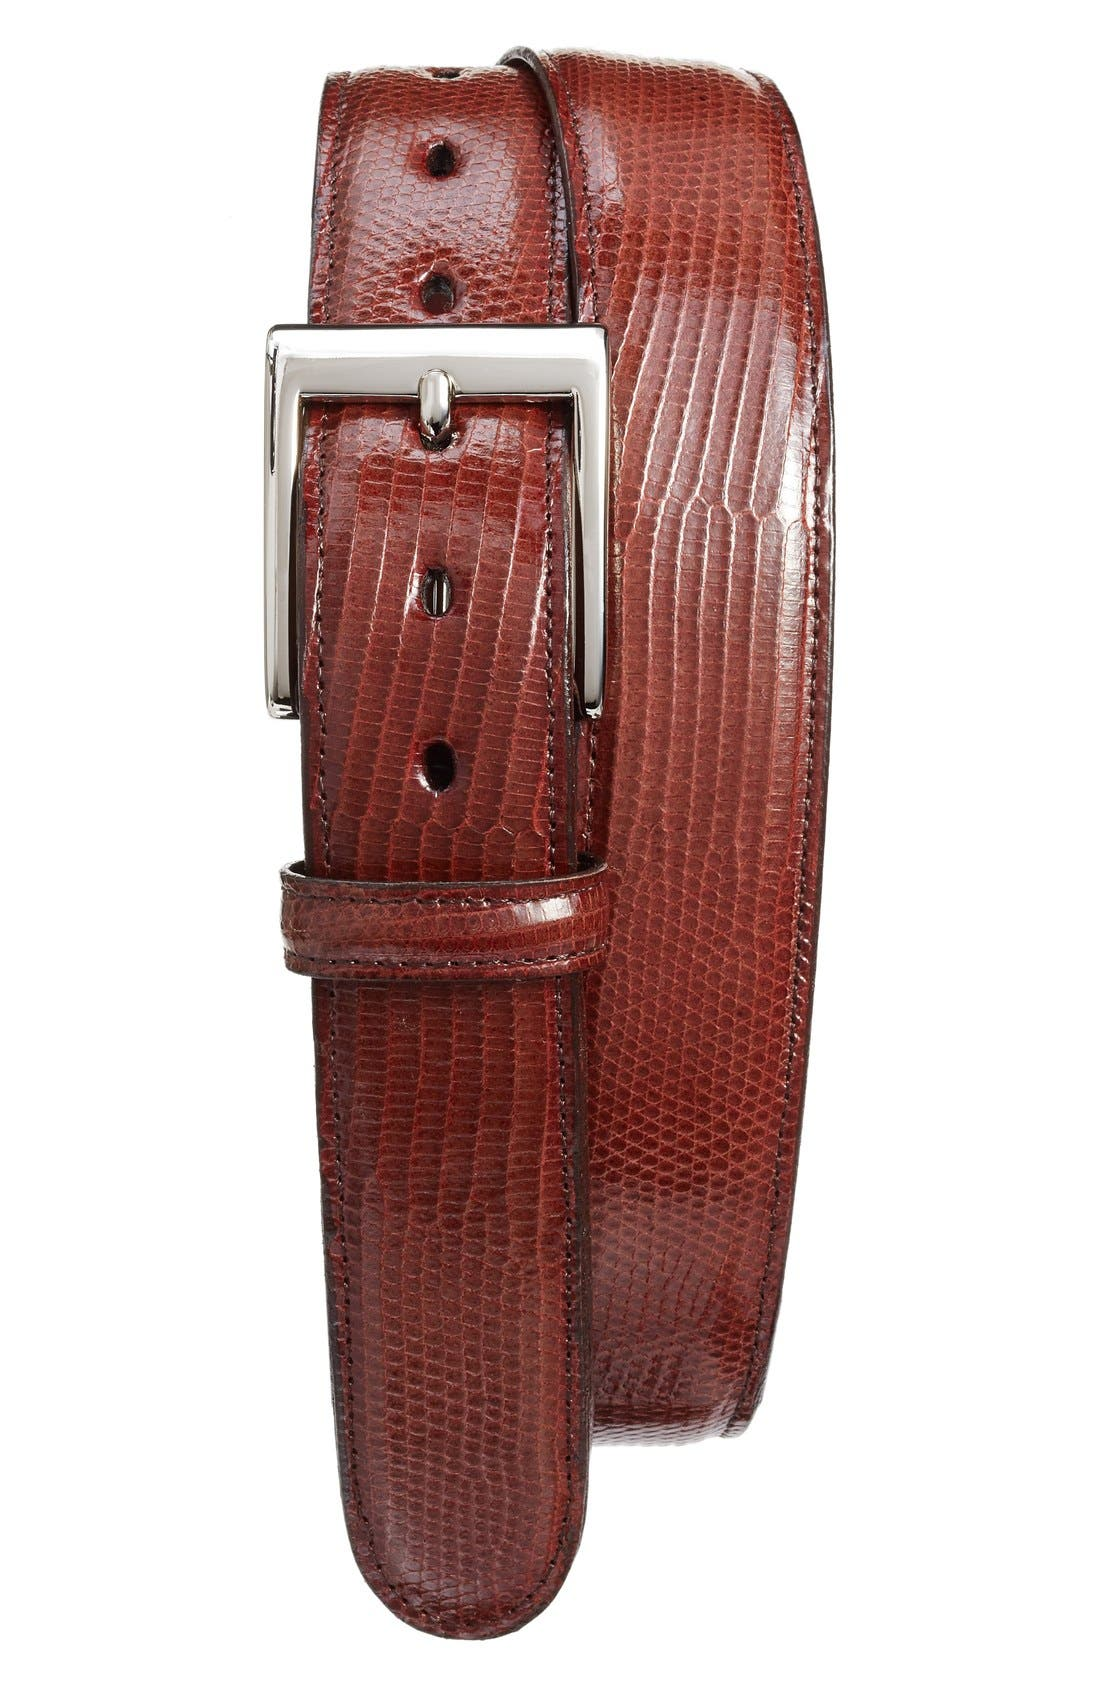 Alternate Image 1 Selected - Torino Belts Lizard Leather Belt